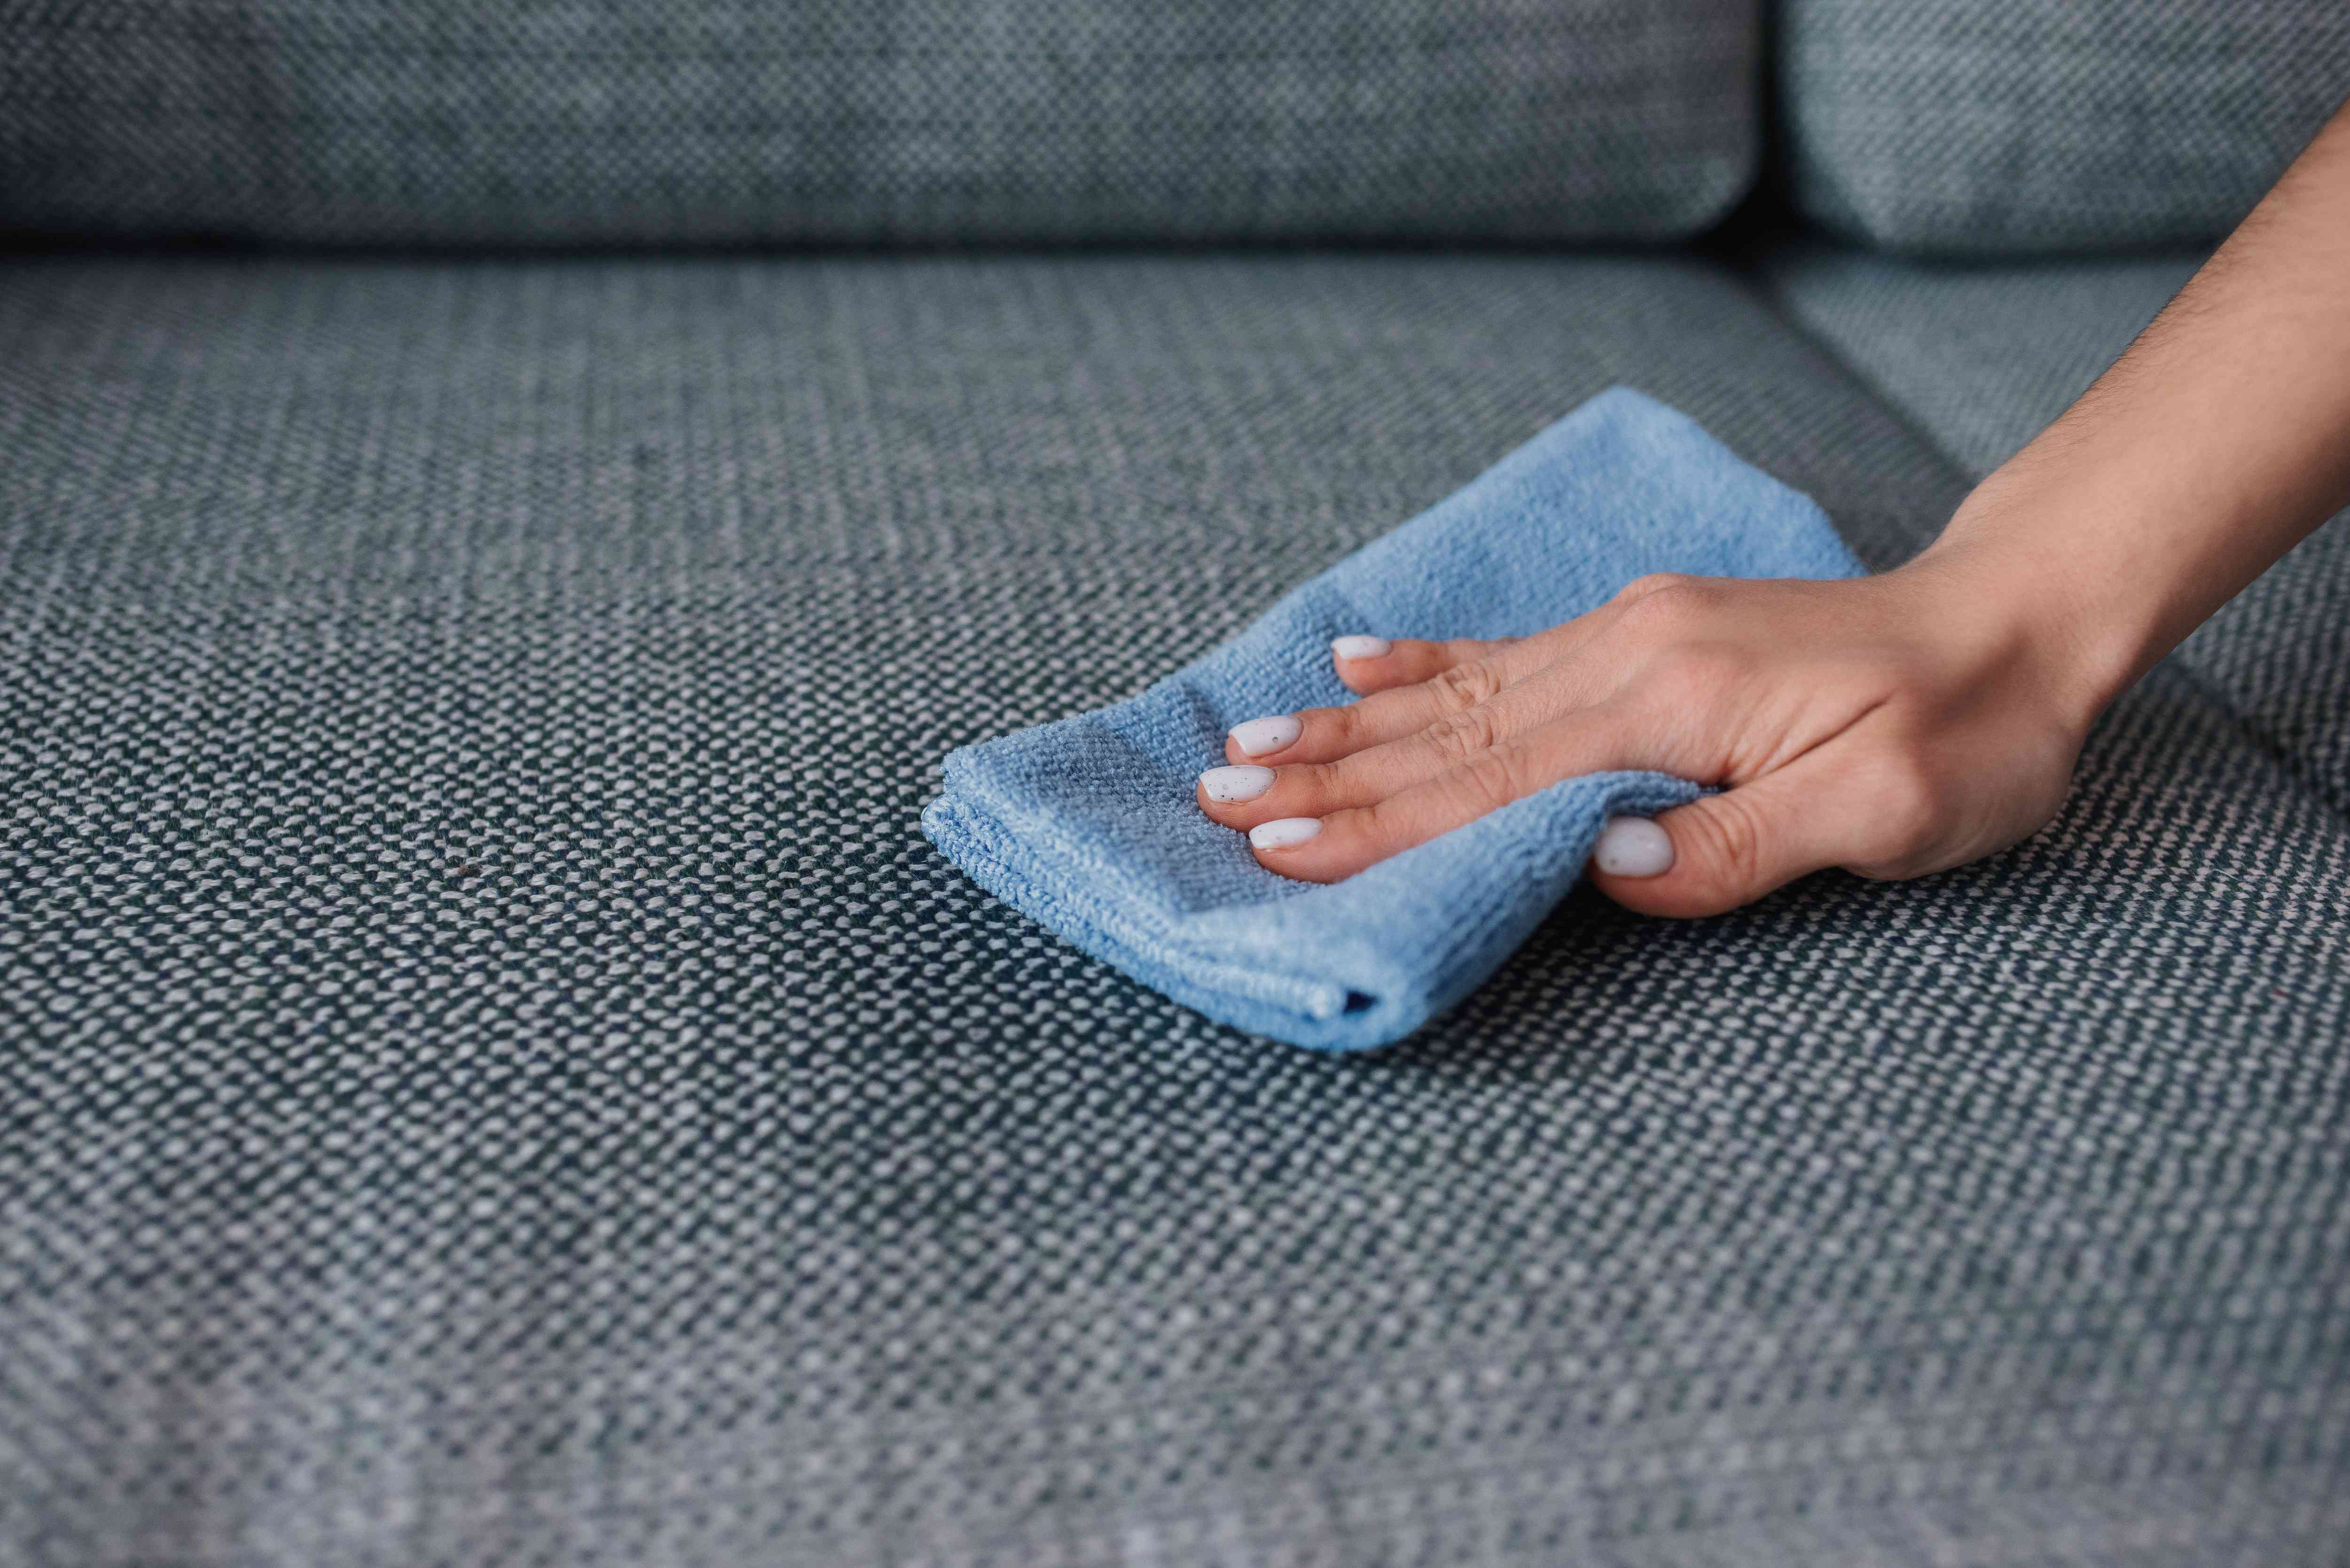 blotting a stain on a sofa